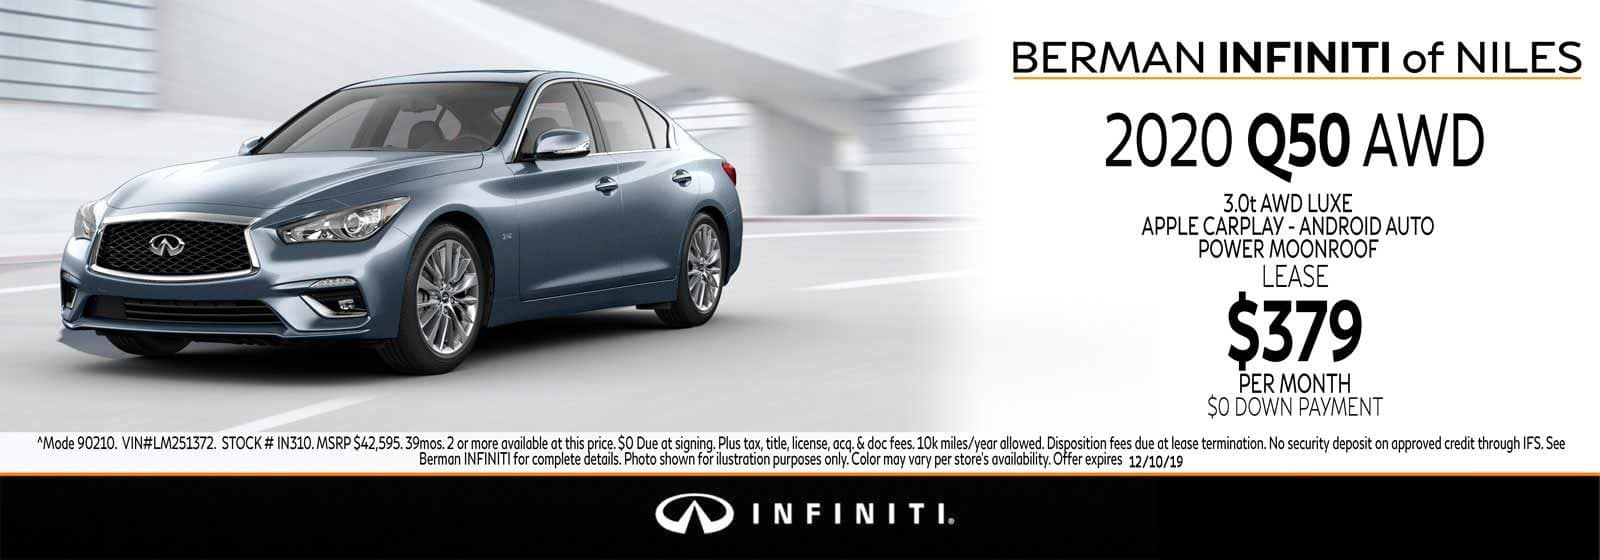 New 2020 INFINITI Q50 November Offer at Berman INFINITI of Niles!